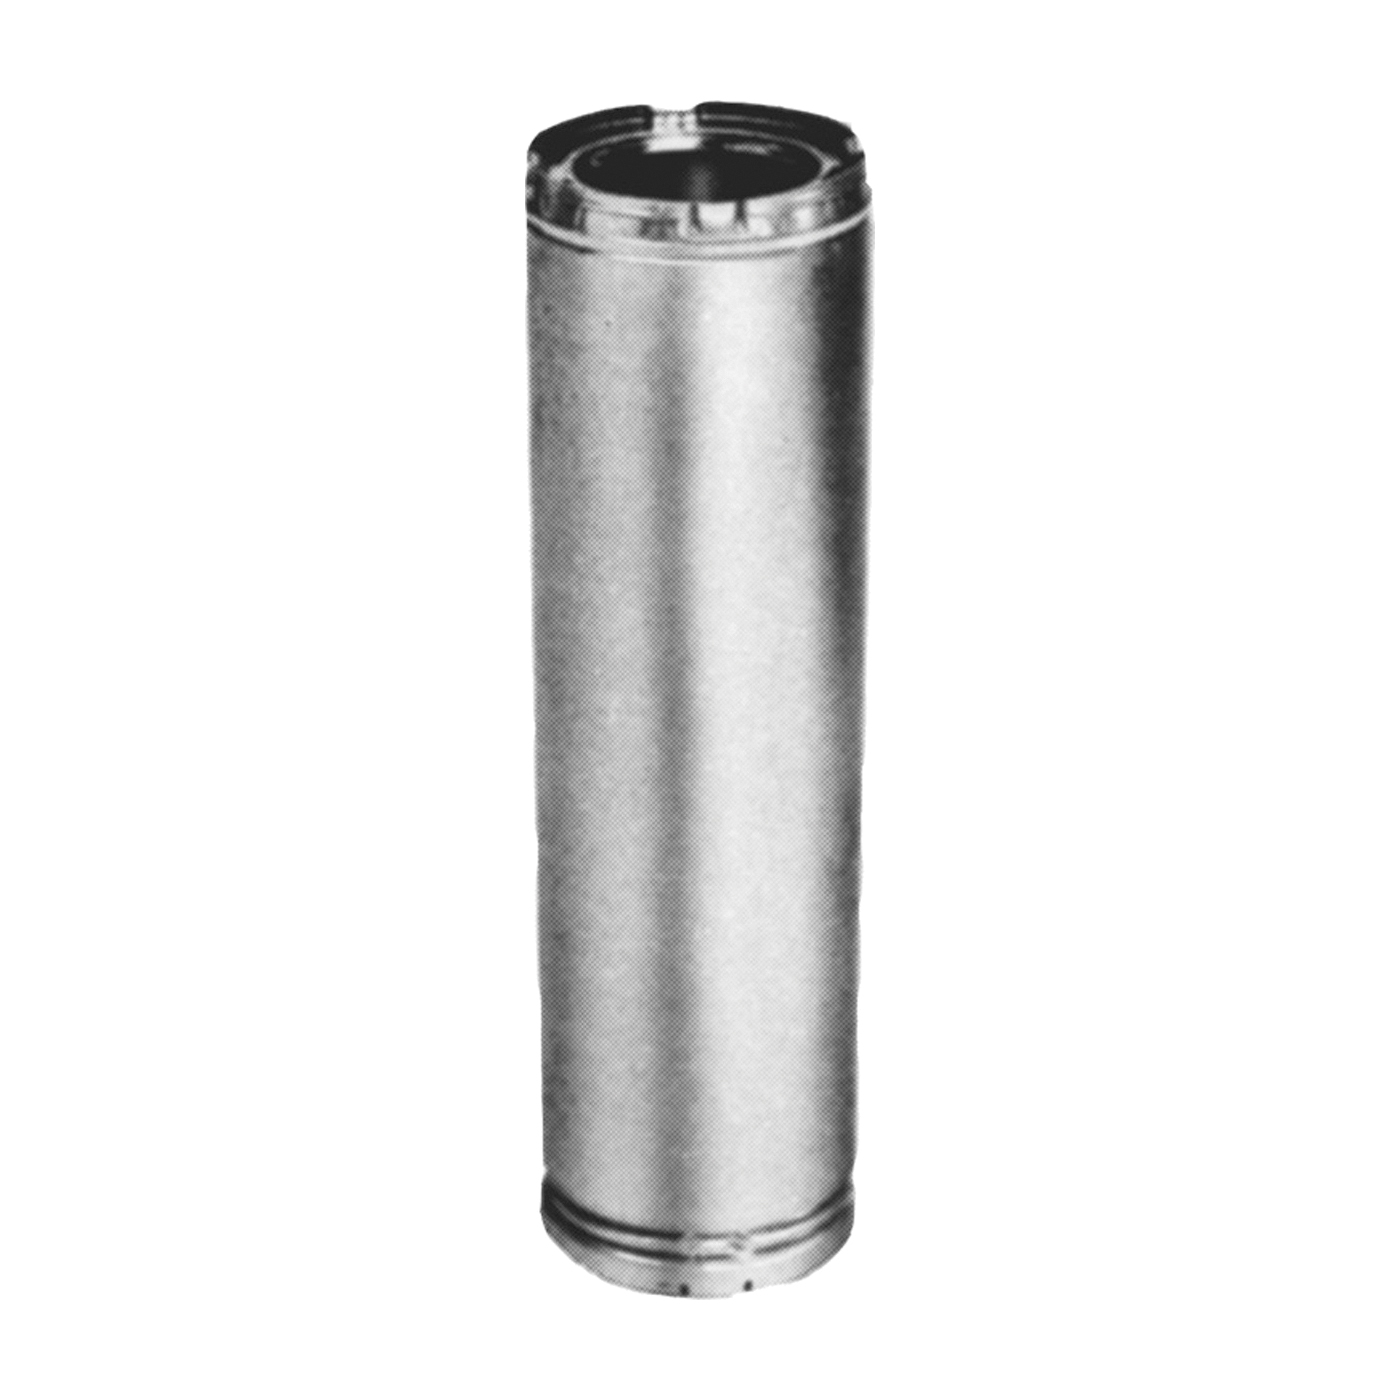 Picture of AmeriVent 8HS-12 Chimney Pipe, 11 in OD, 12 in L, Galvanized Stainless Steel